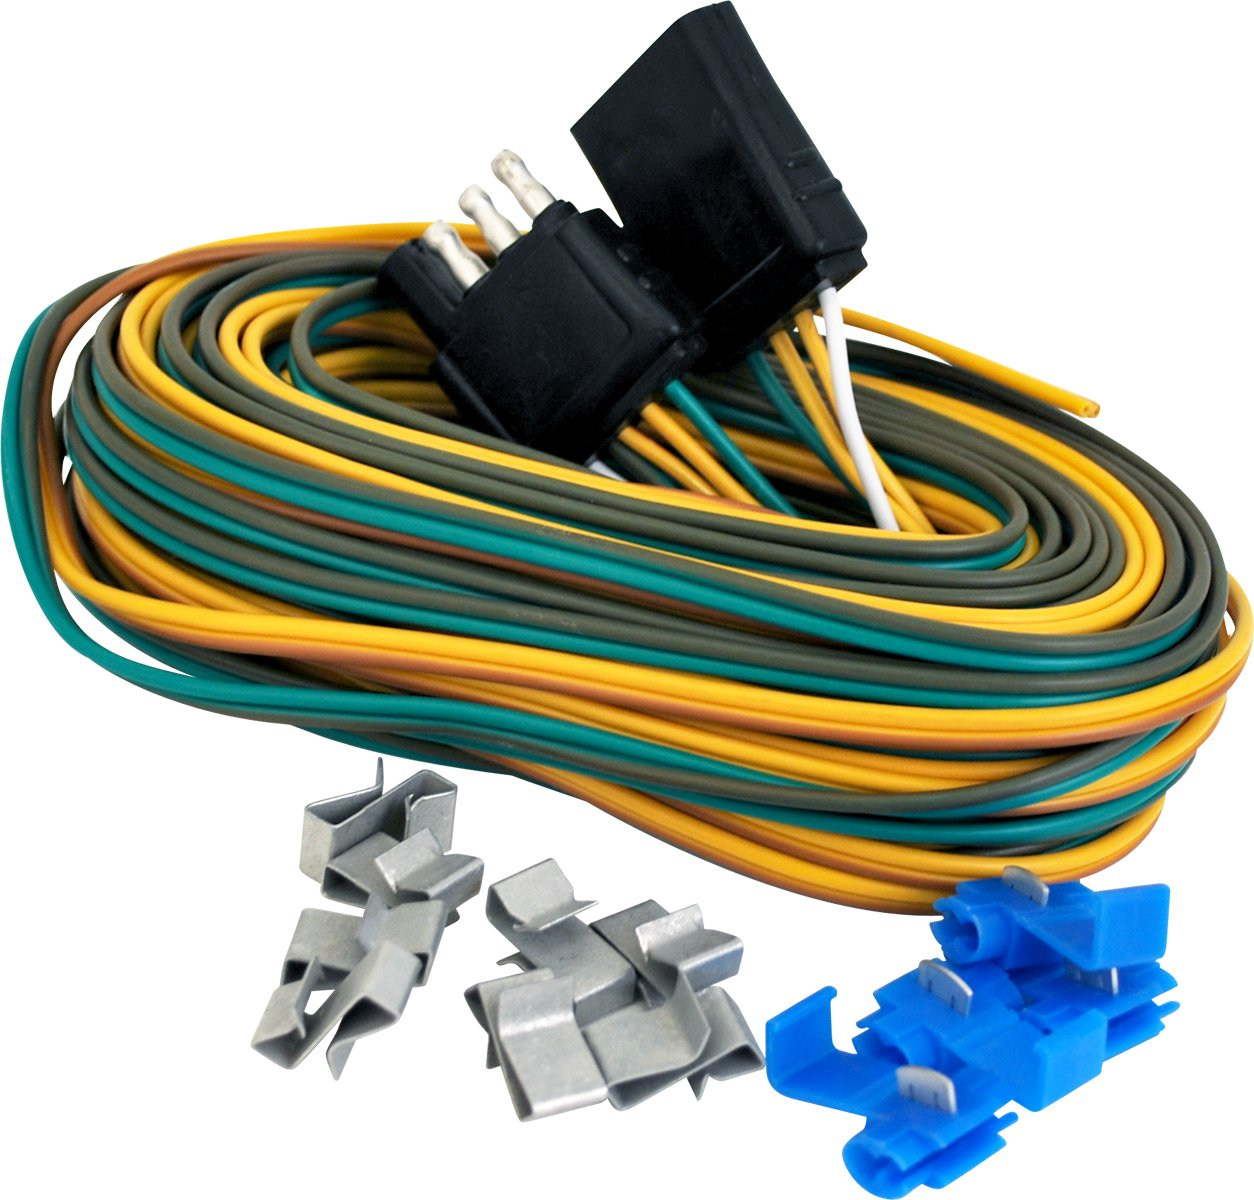 71fx318 DlL._SL1254_ amazon com attwood 7621 7 complete trailer wiring kit automotive Plug in Trailer Wiring Kits at mifinder.co